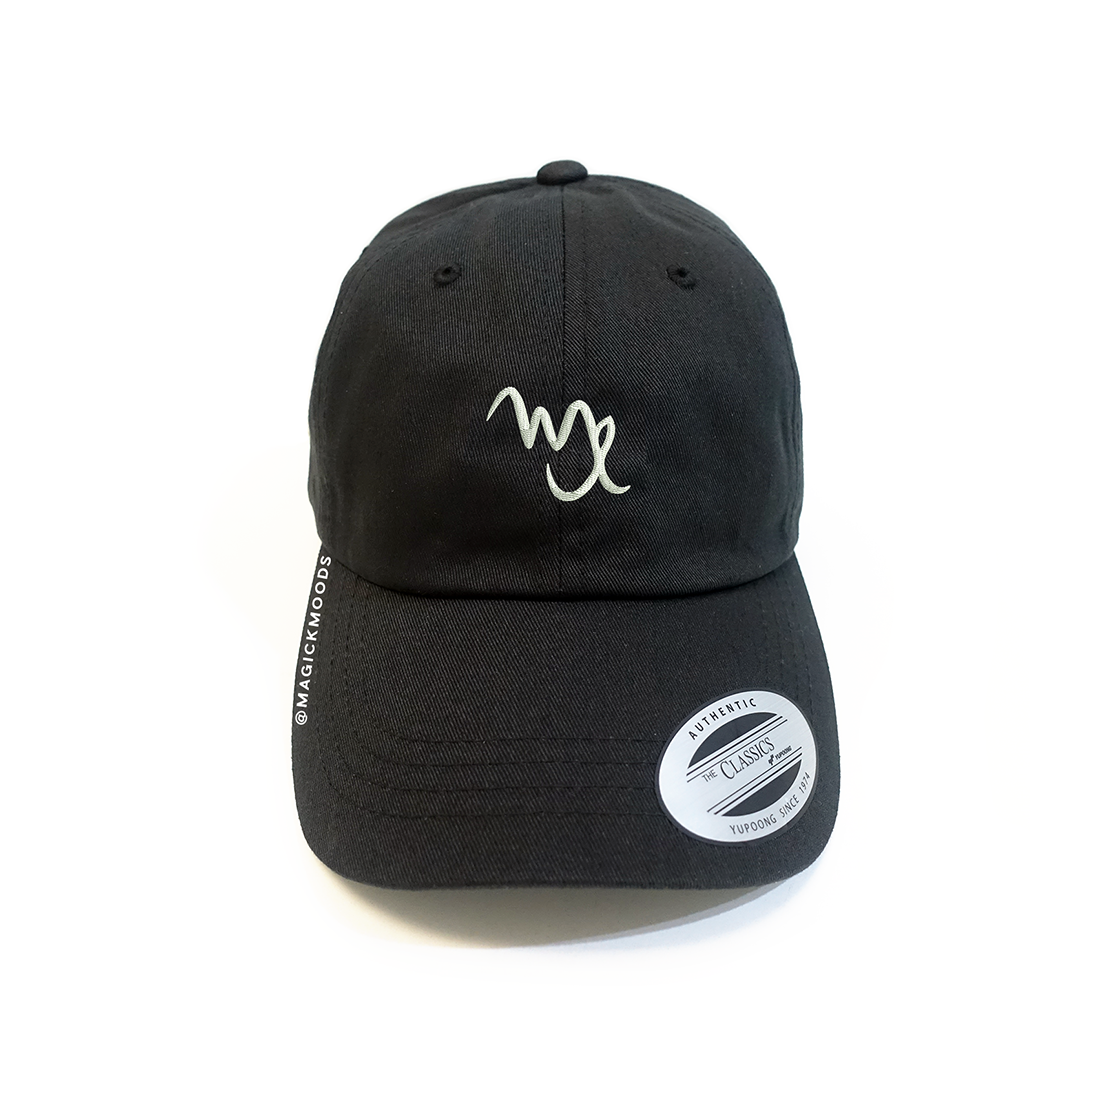 Virgo Embroidered Dad Hat